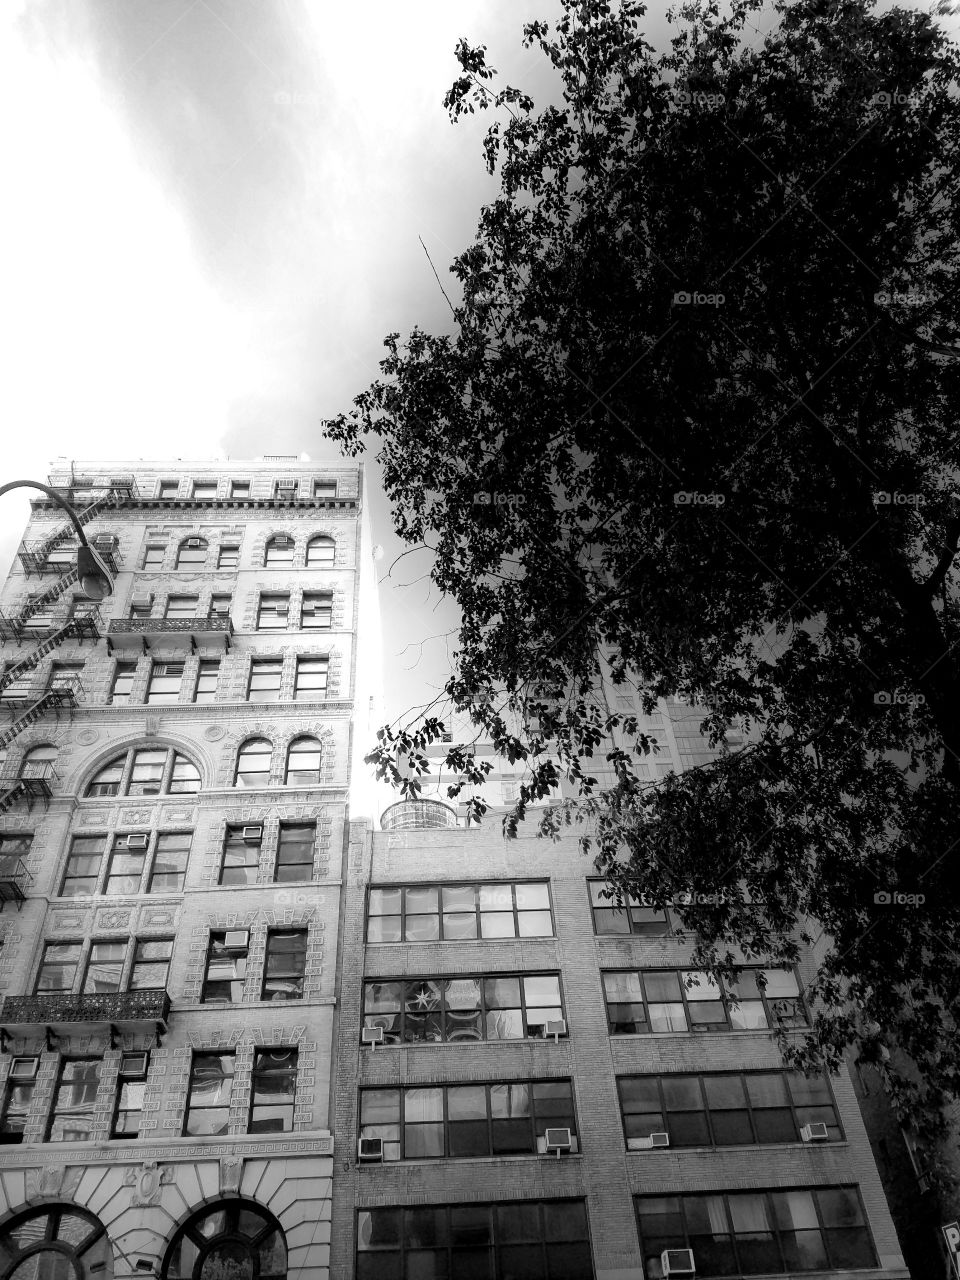 Building in Flatiron on 23rd street - Lower Manhattan. NYC Architecture. Black and White Filter.